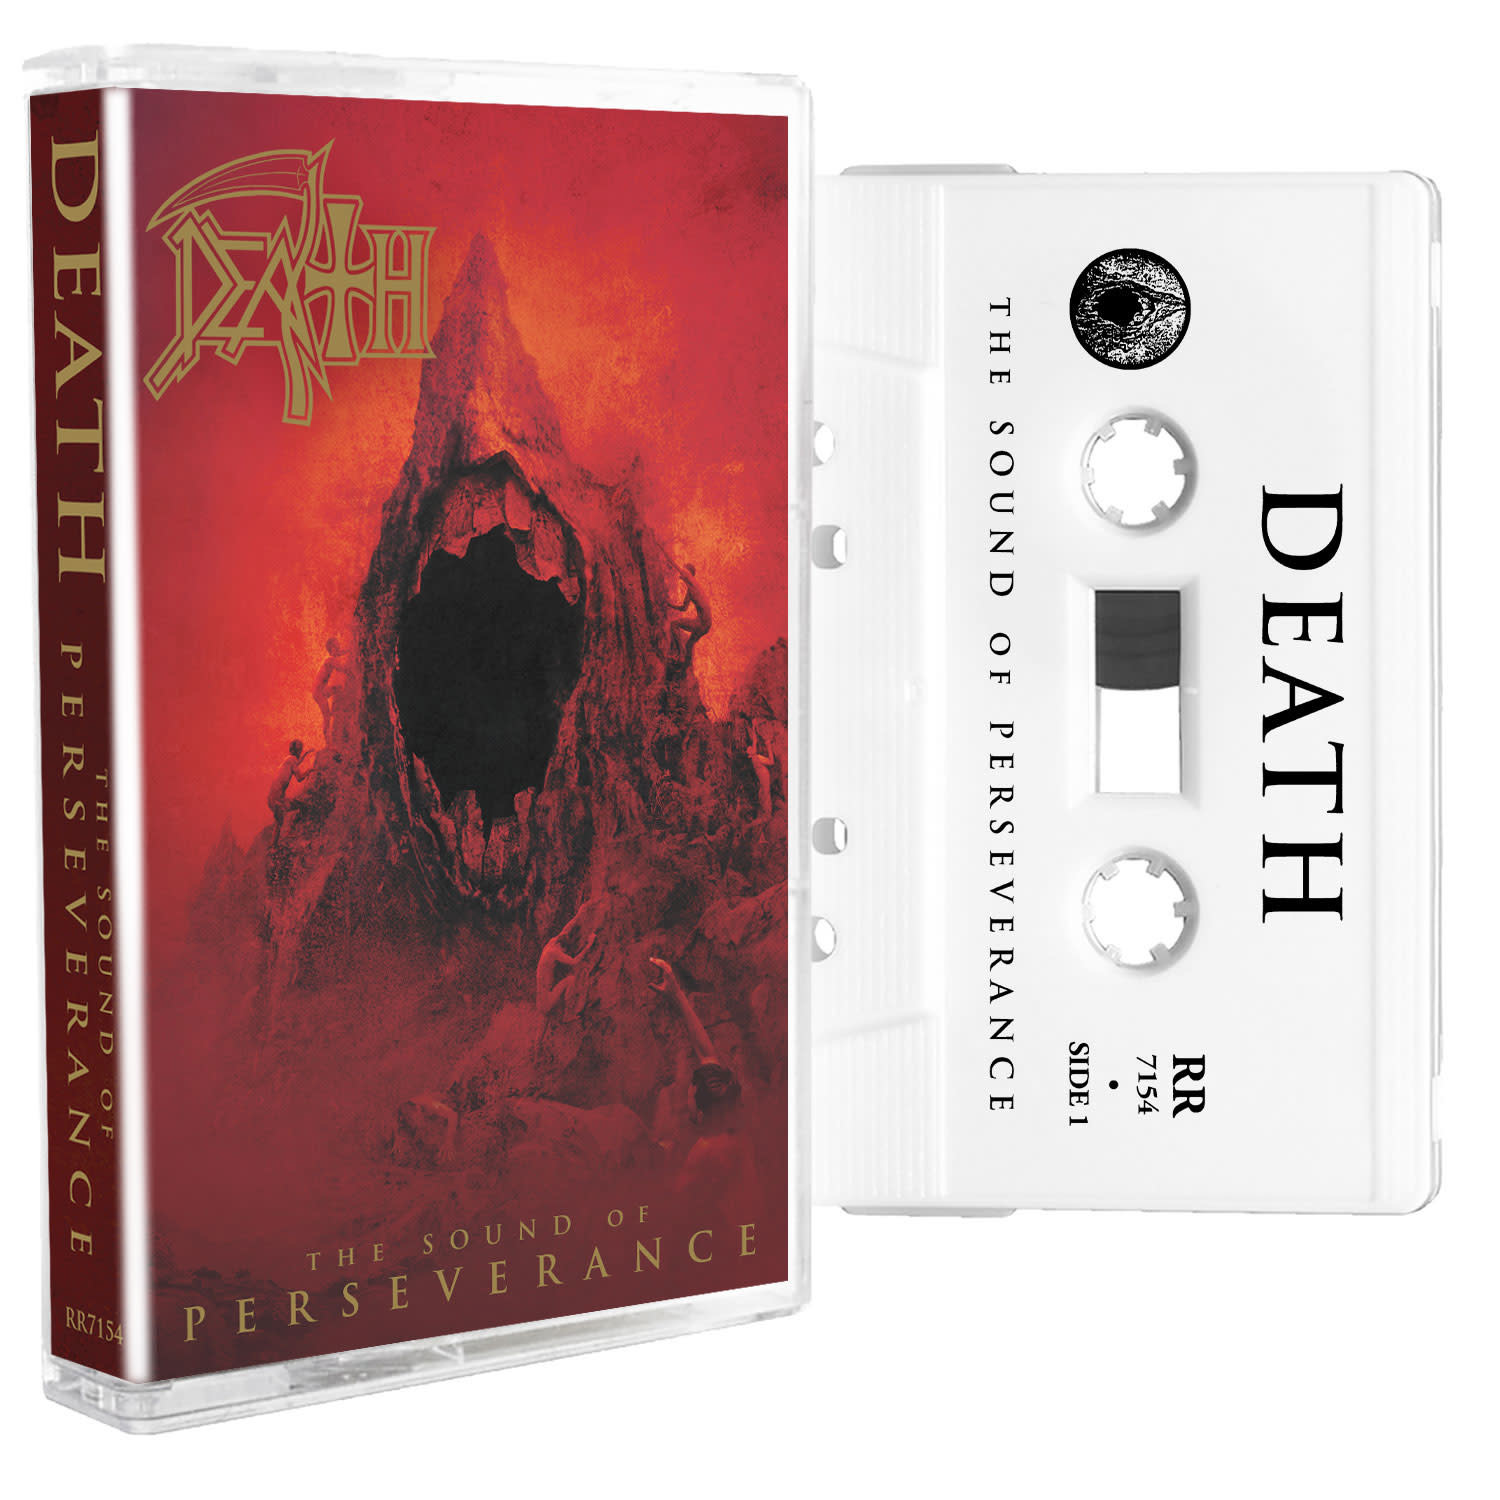 Metal Death - The Sound Of Perseverance